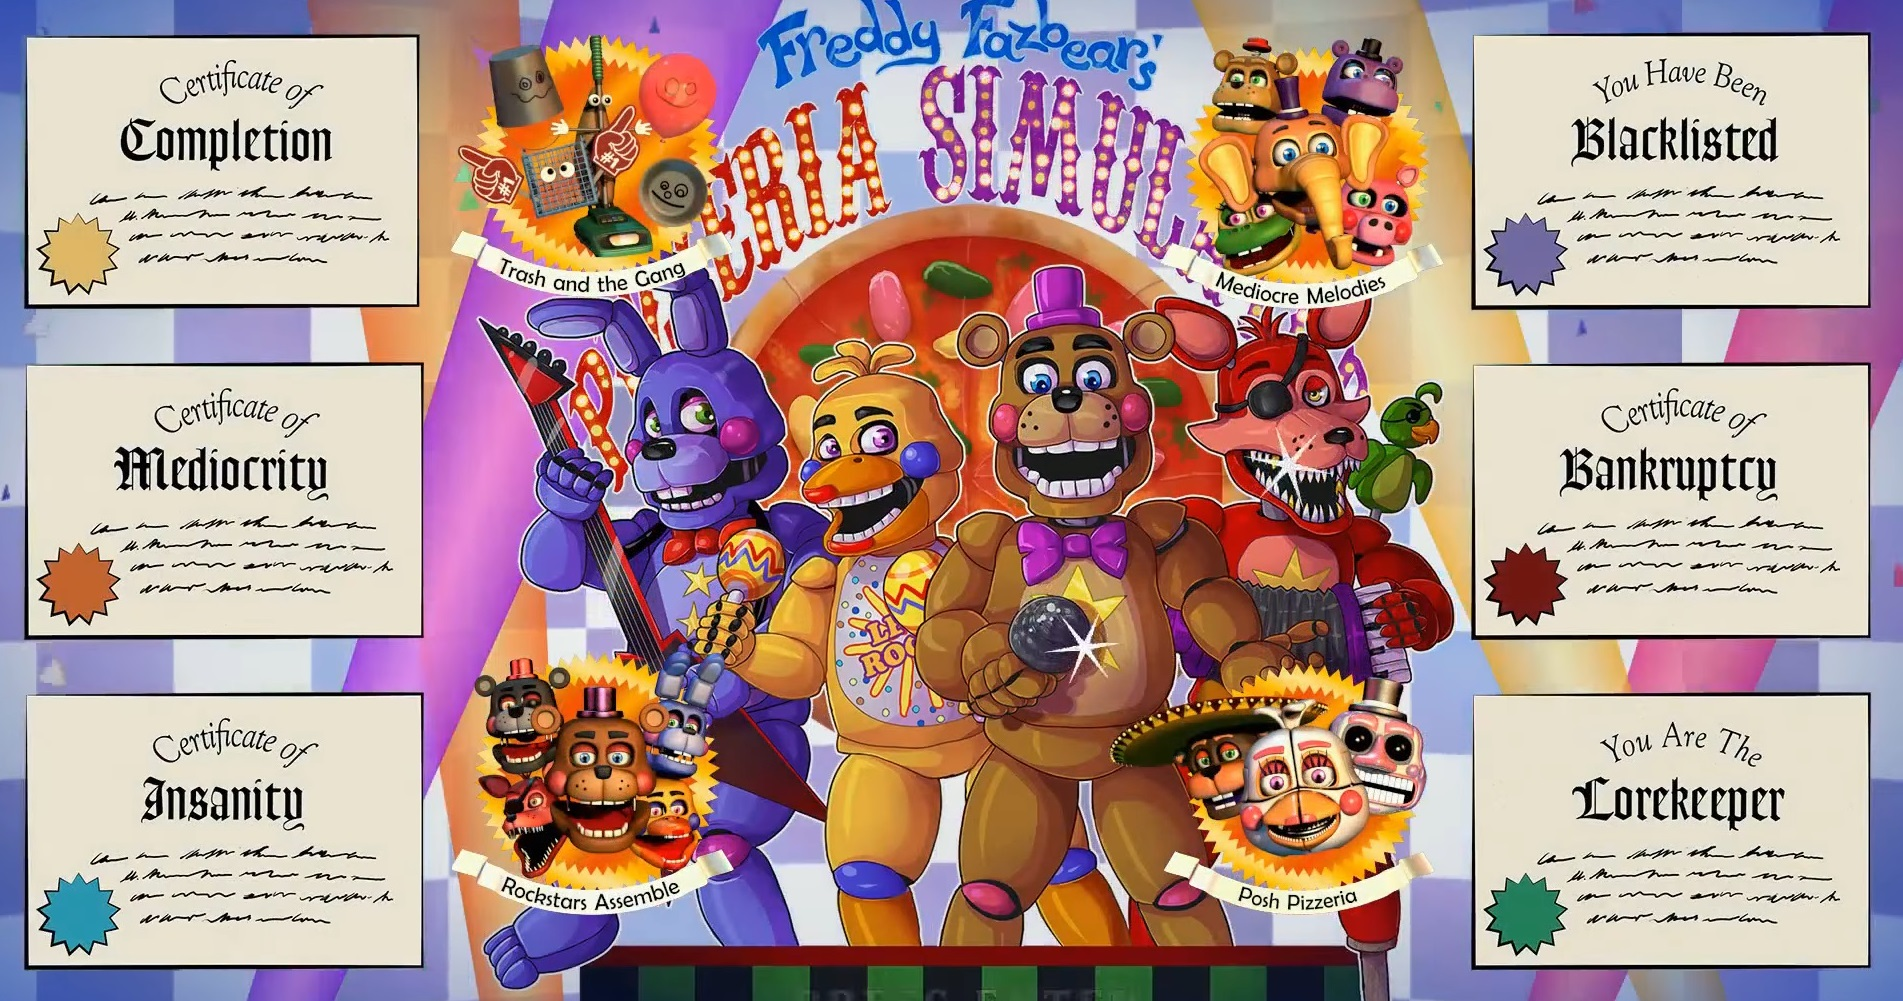 How To Get All Certificates In Freddy Fazbear S Pizzeria Simulator